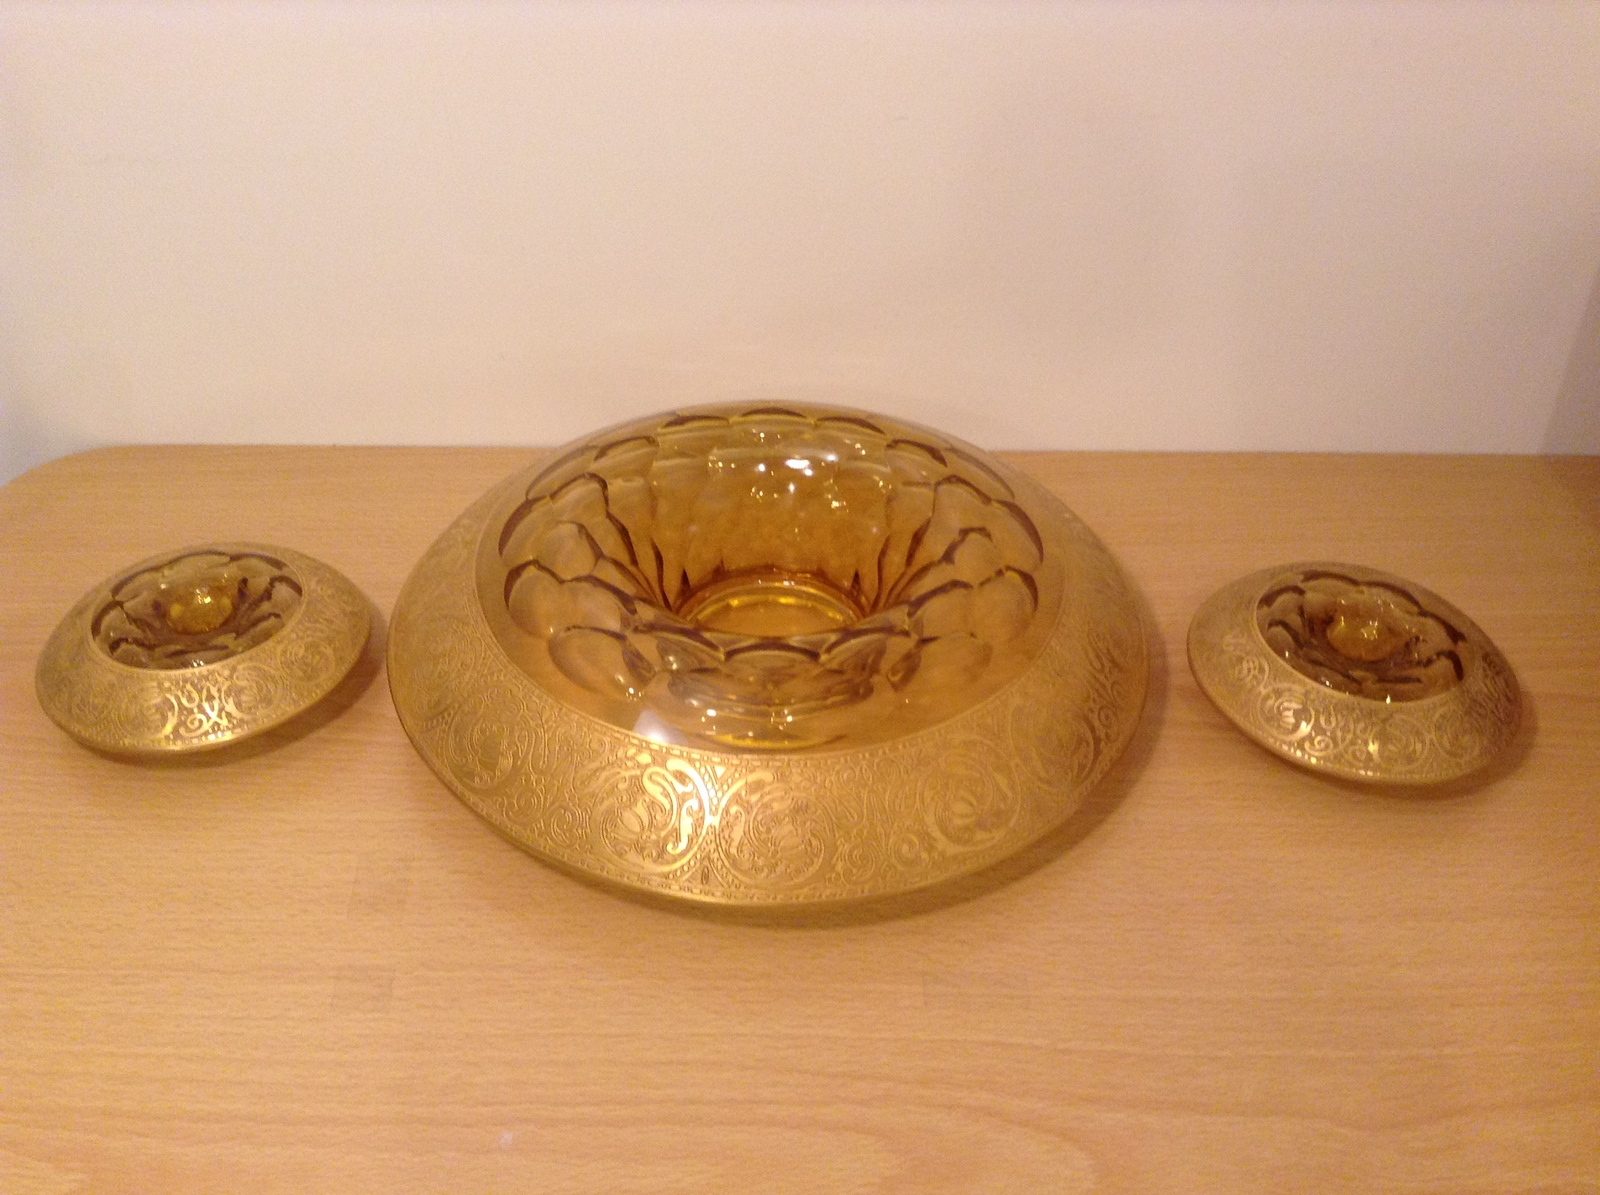 Primary image for Vintage Unique Gold Overlay Centerpiece Set of 3 Formal Table Candle Holders